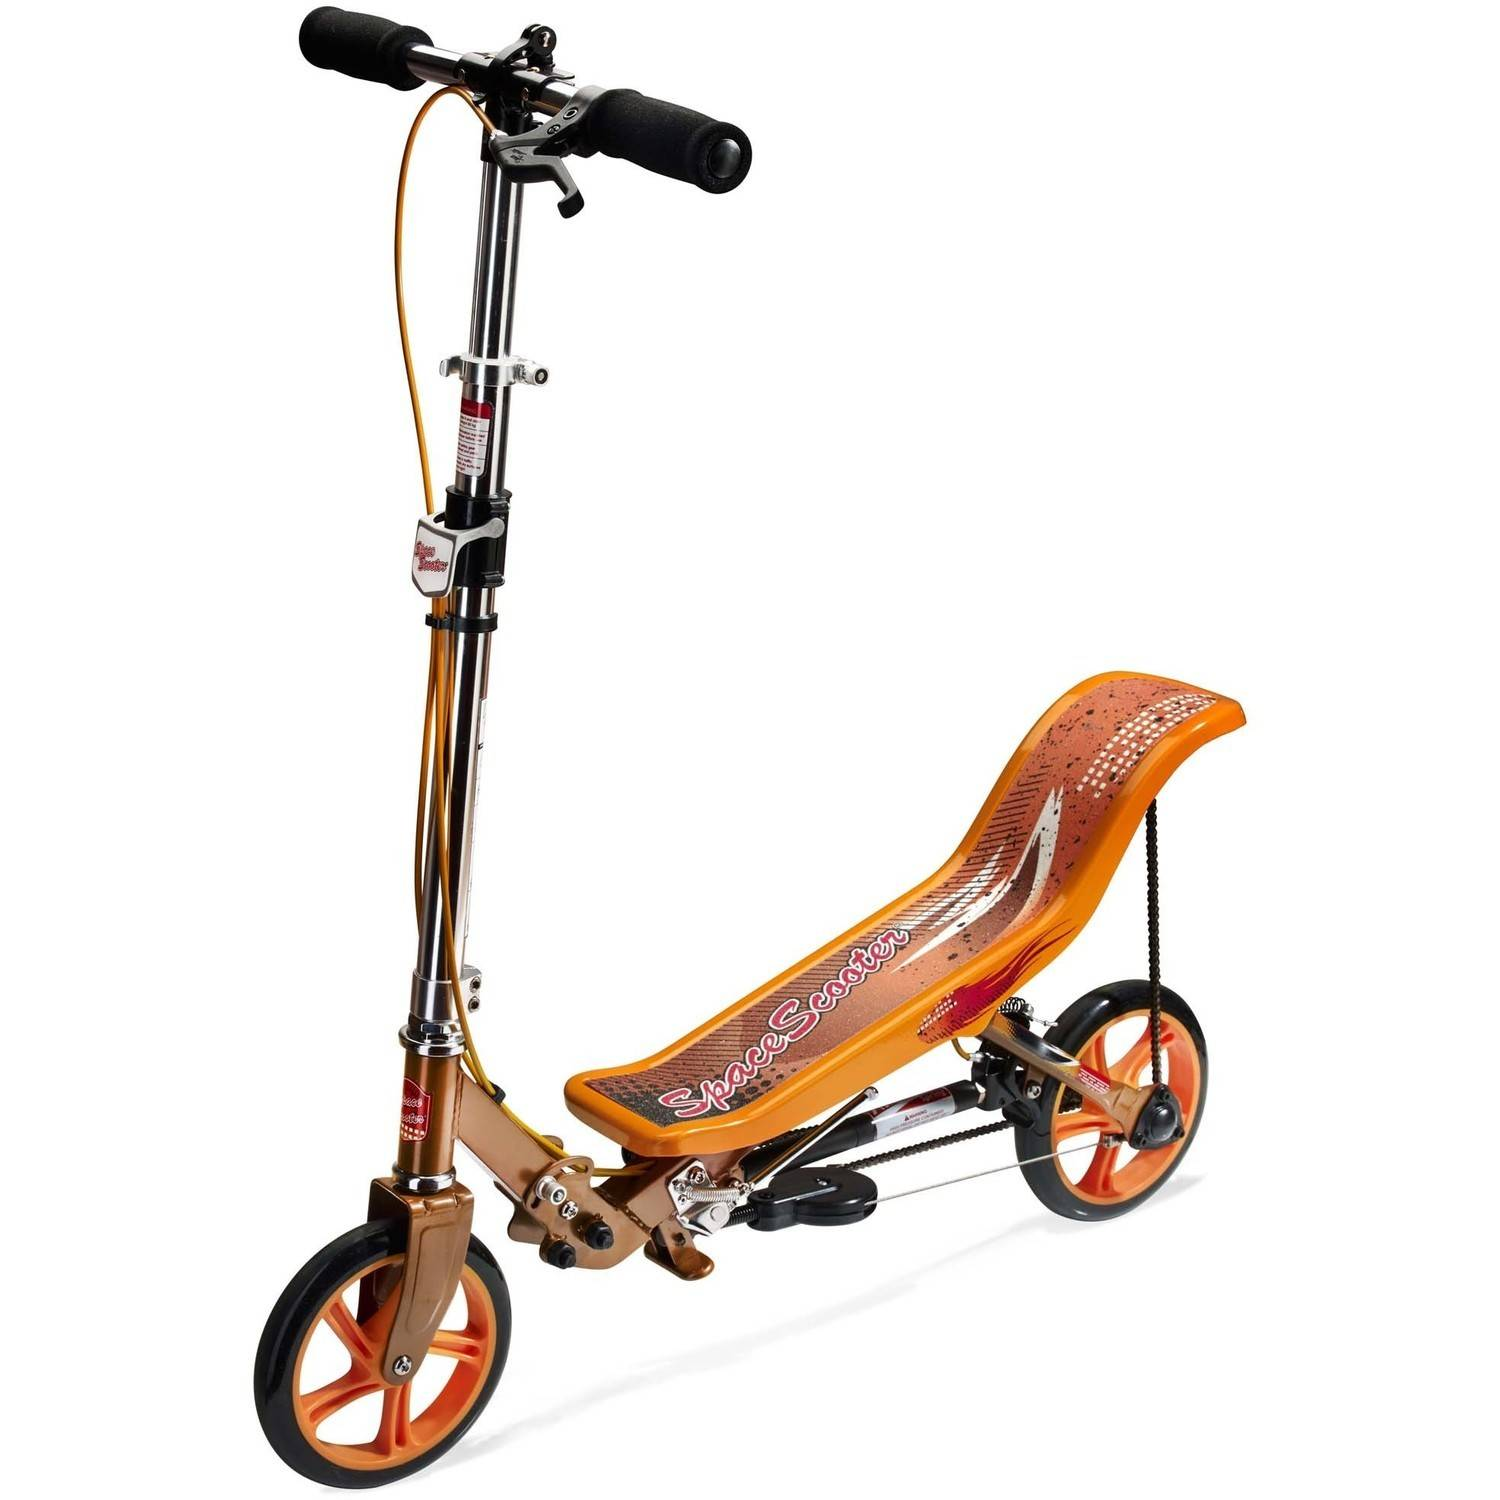 Space Scooter X580, Regular, Orange by Space Scooter